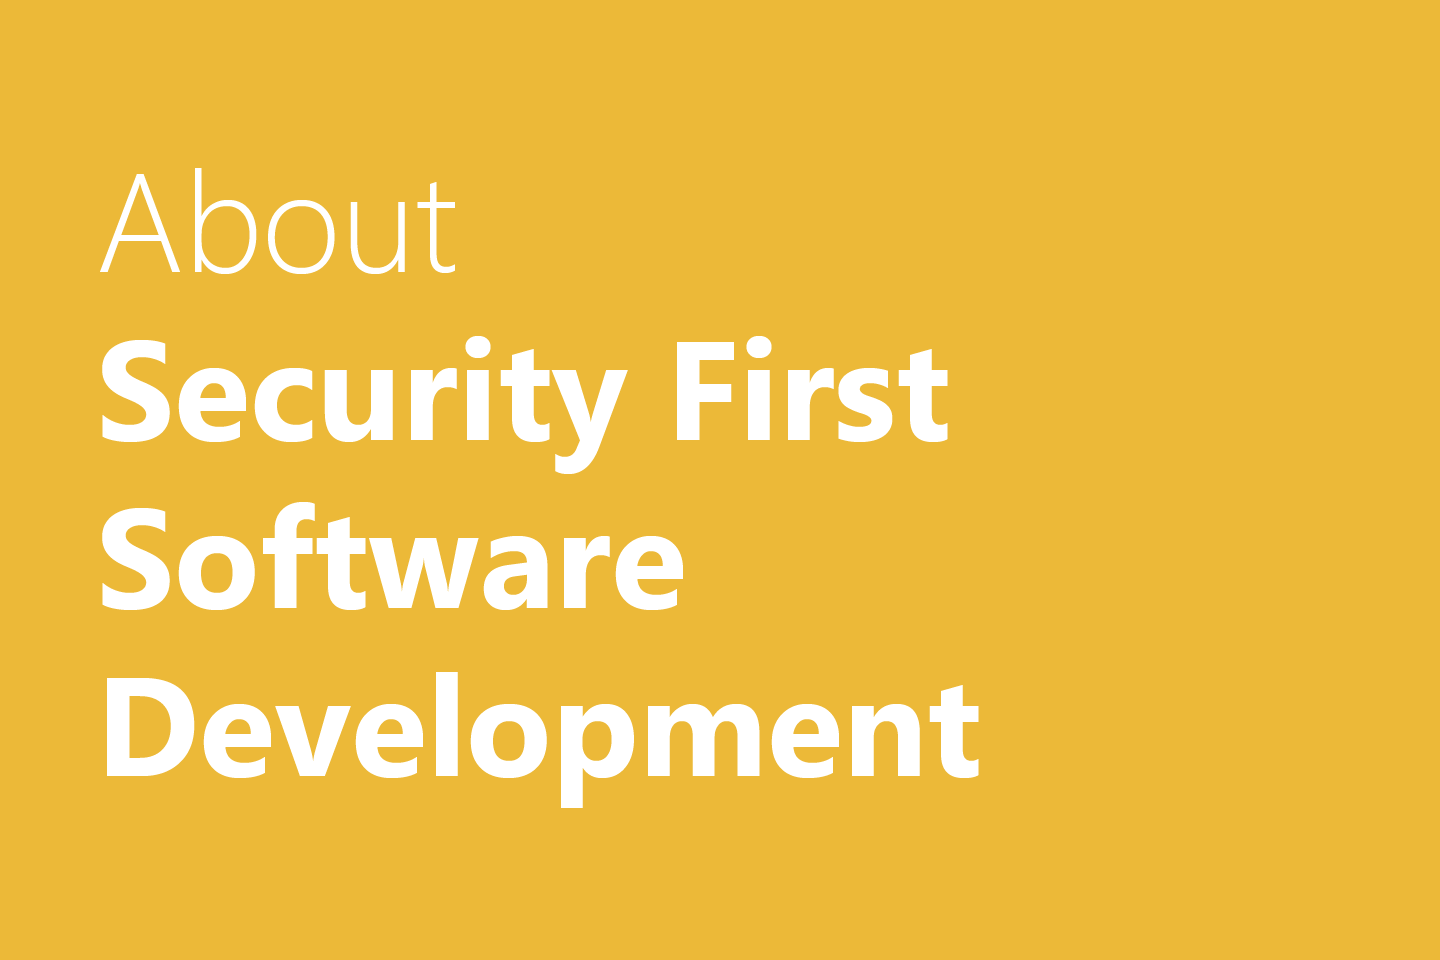 Security First Software Development